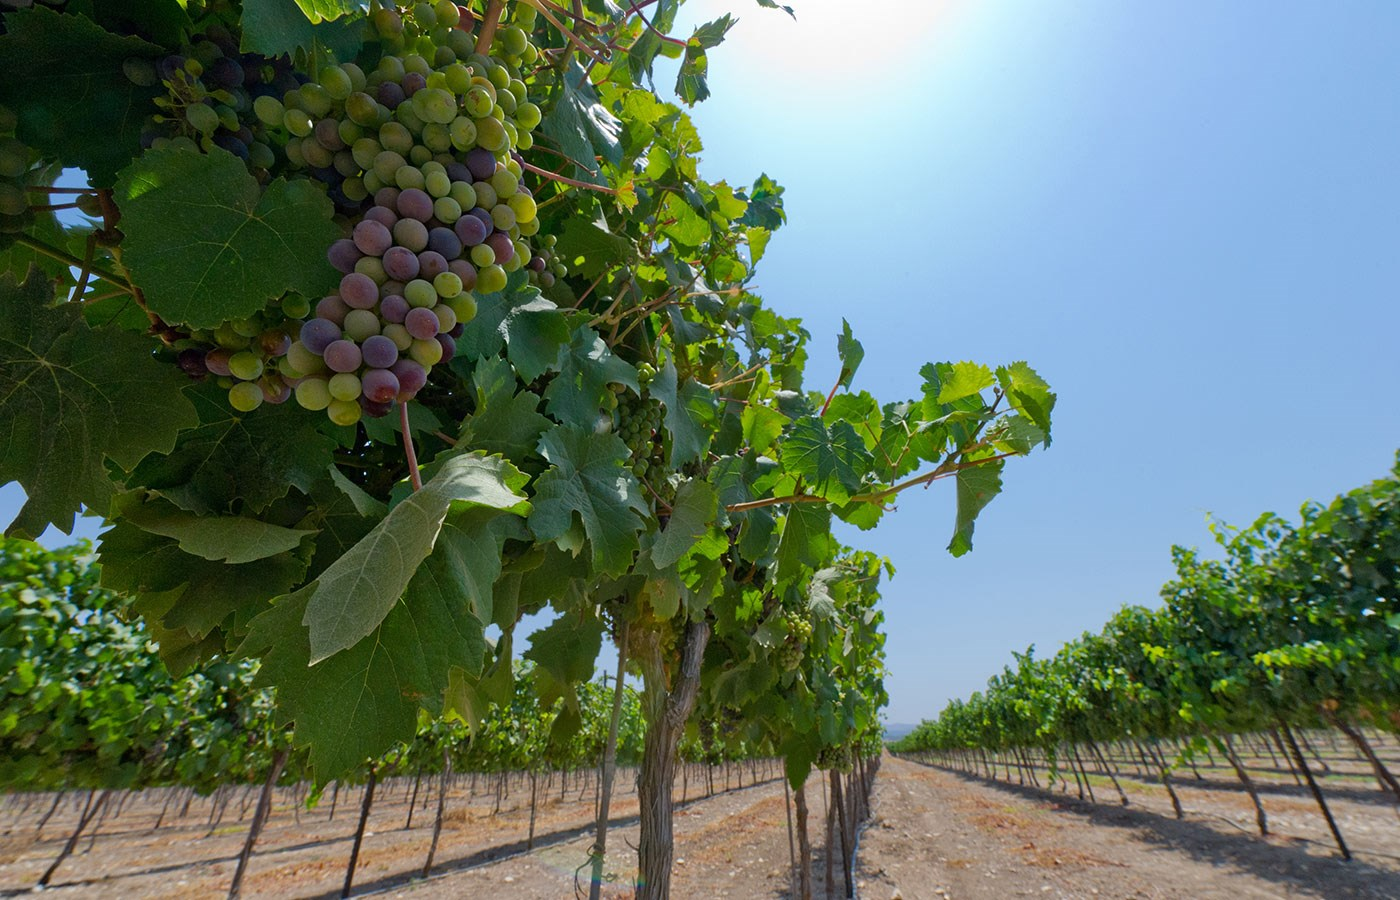 Explore wines from Israel - Taste history!